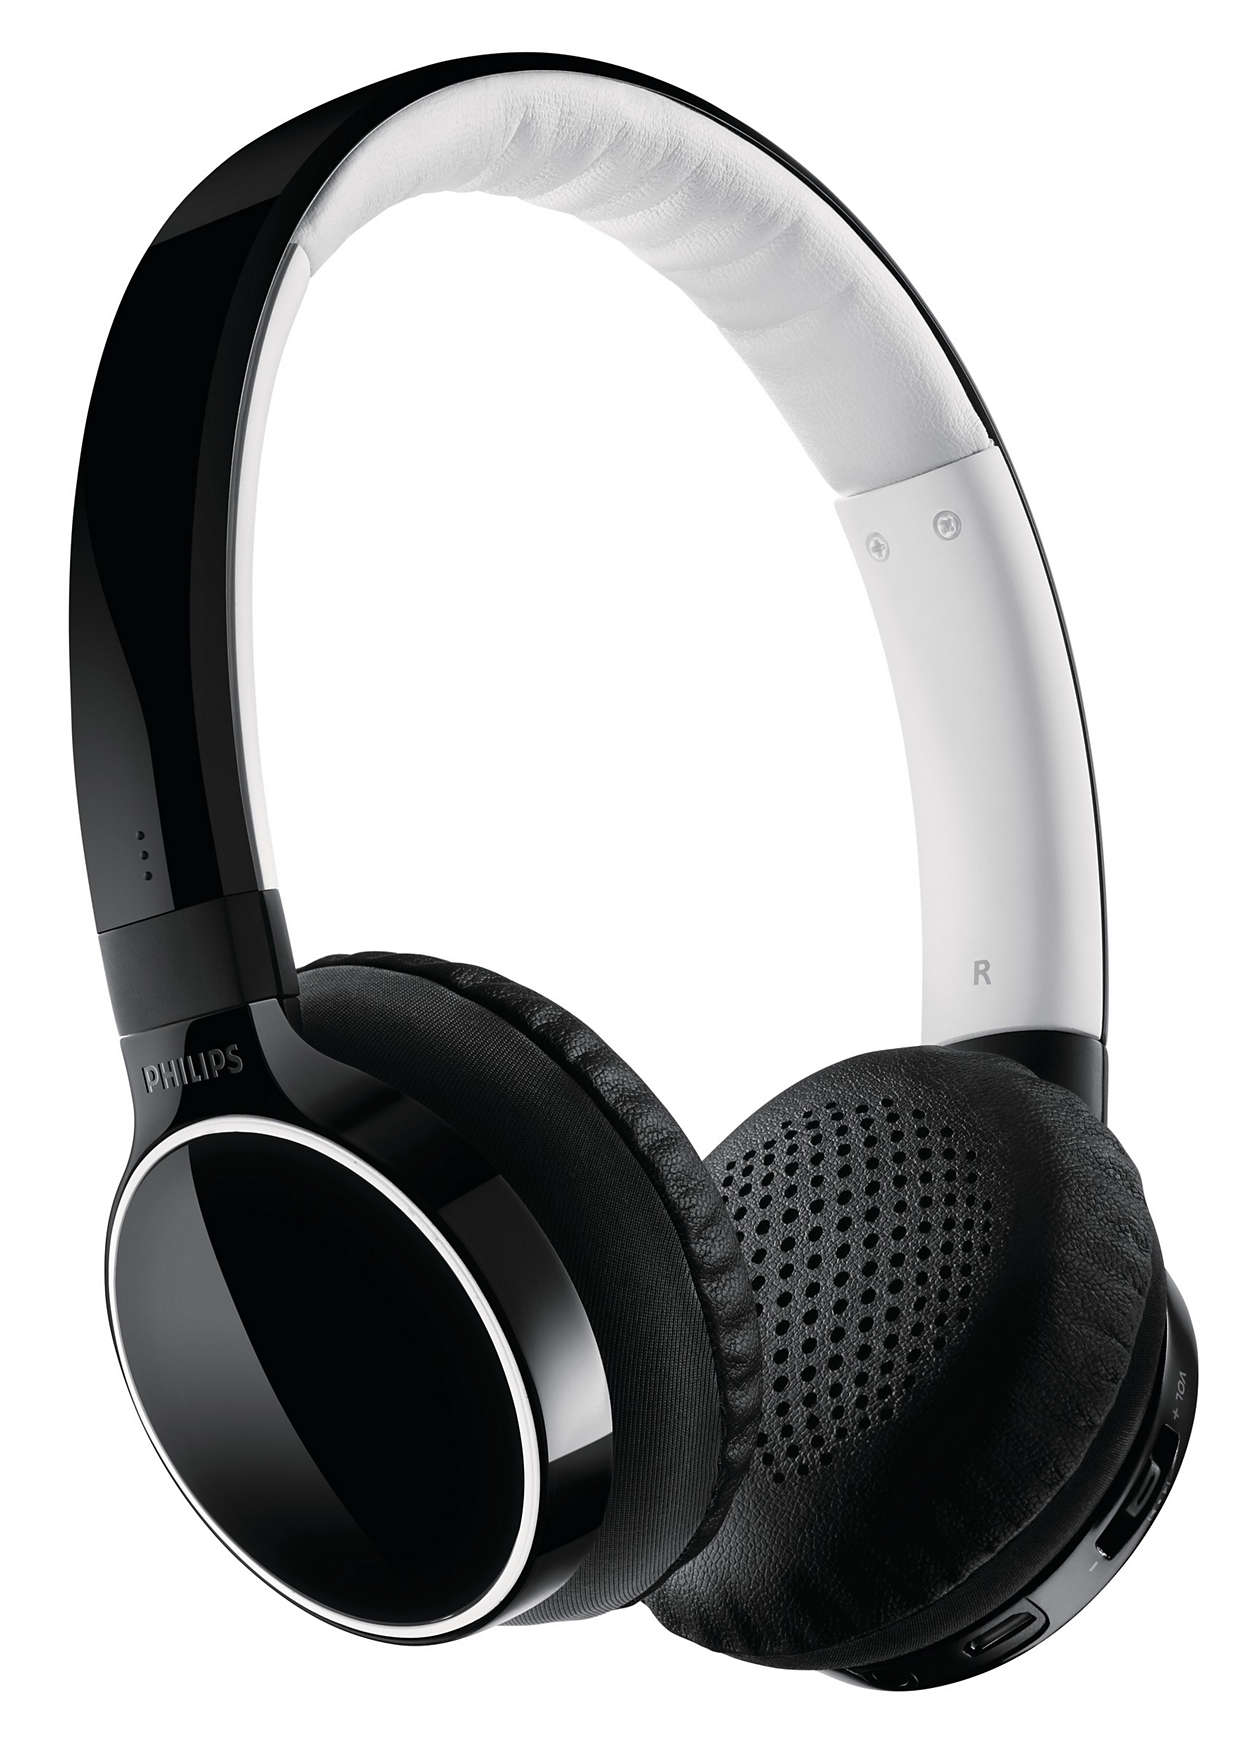 Bluetooth Stereo Headset Shb9100 28 Philips